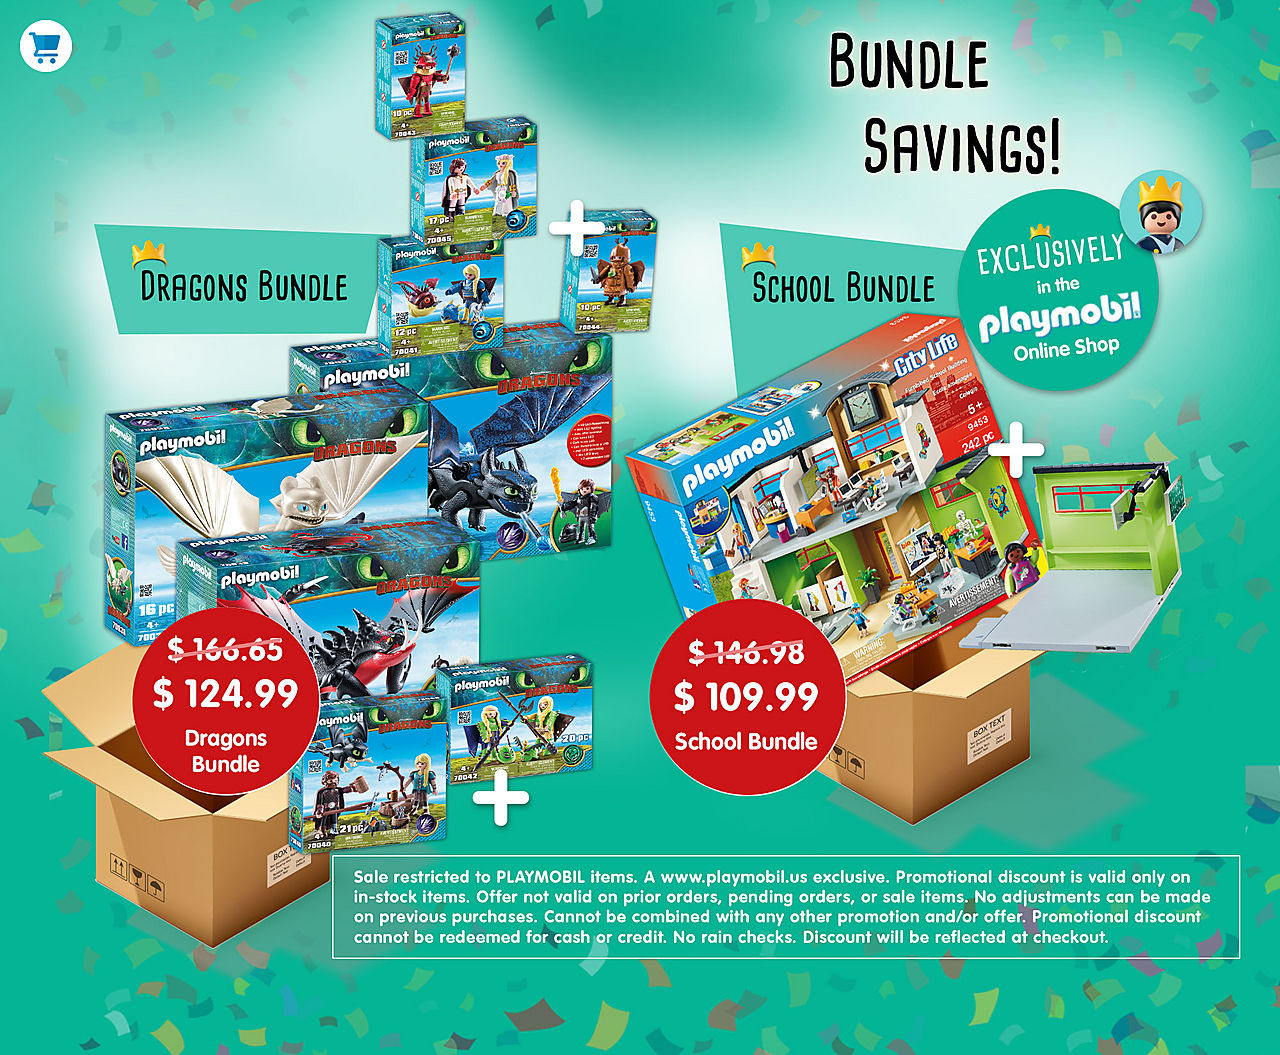 SHOP_BUNDLES_2019_09_2_US_2X2_desktop